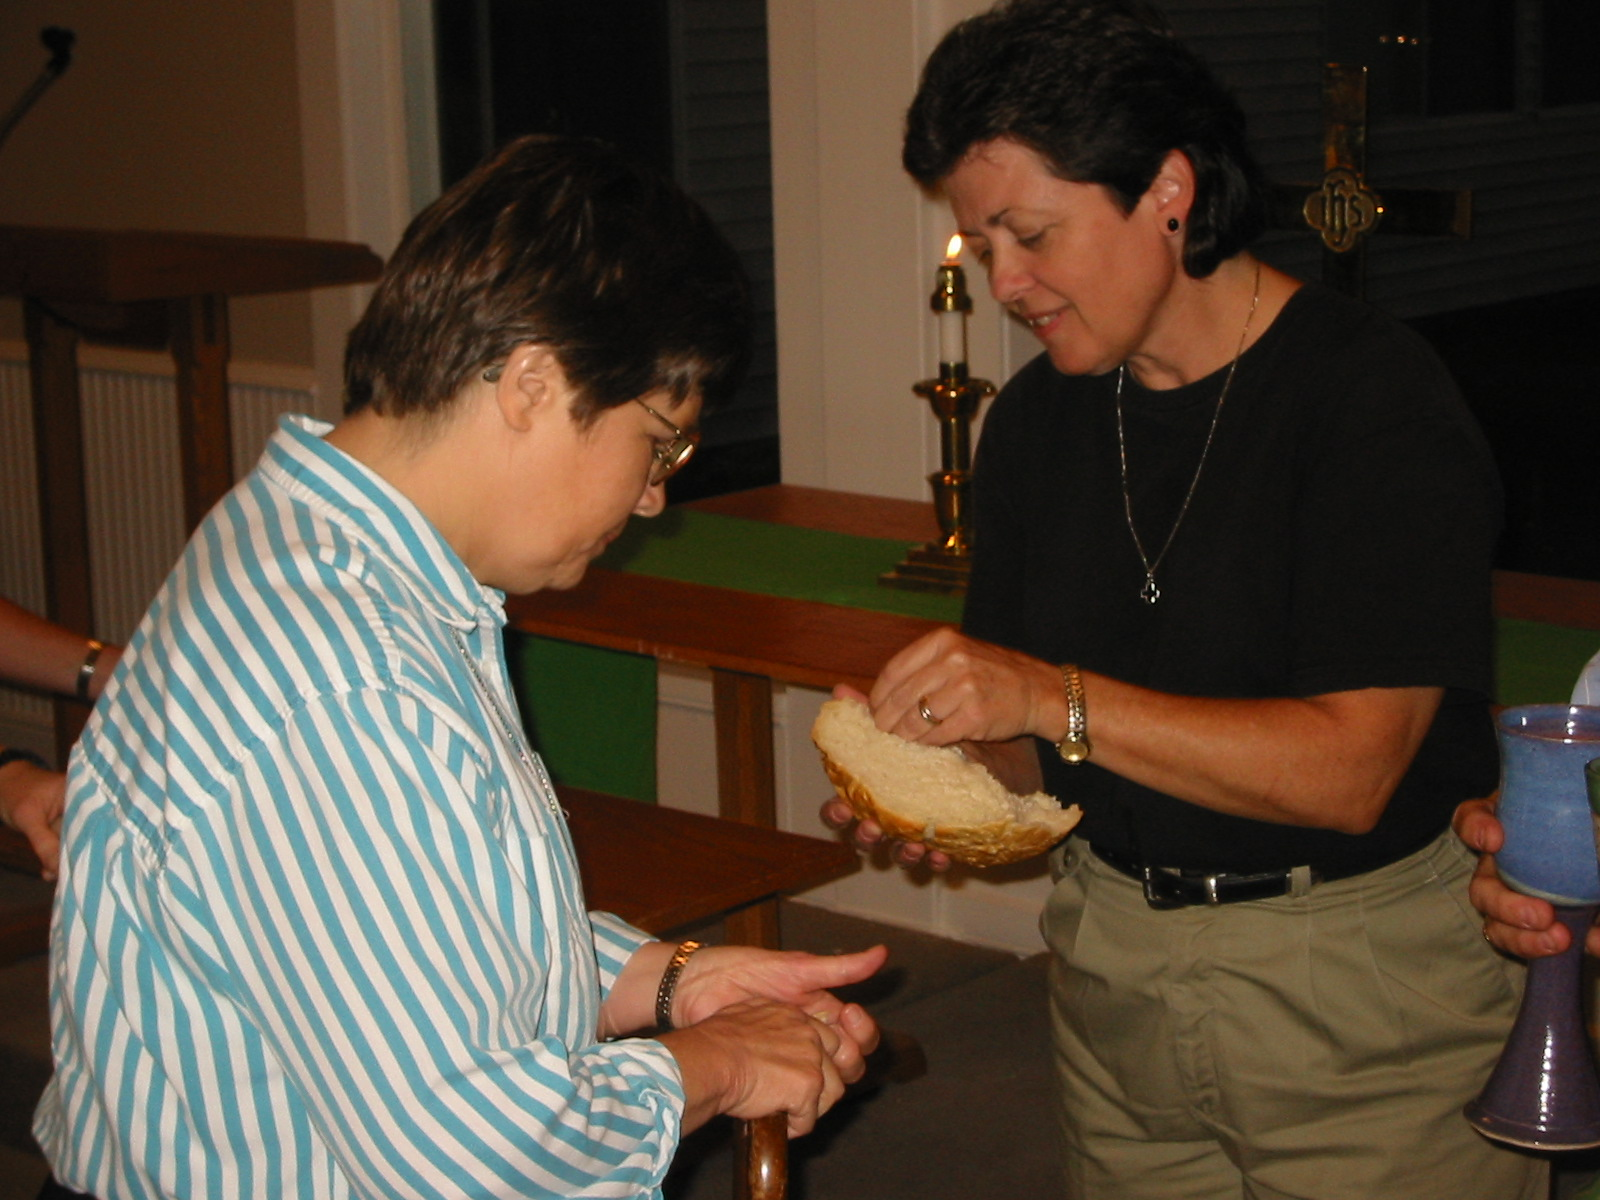 The pastor uses her hands to break off a piece of communion bread for a member of the congregation.